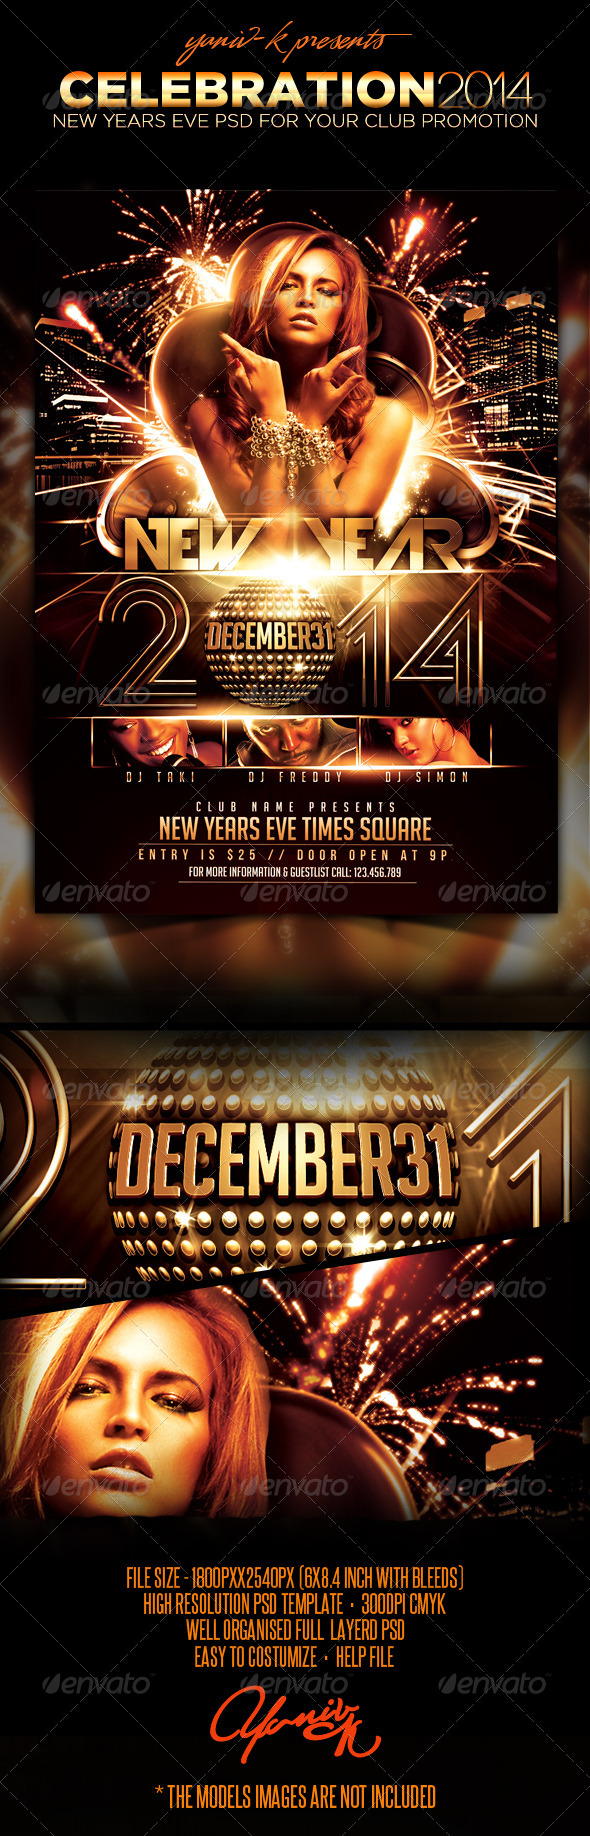 Celebration Flyer Template - Clubs & Parties Events